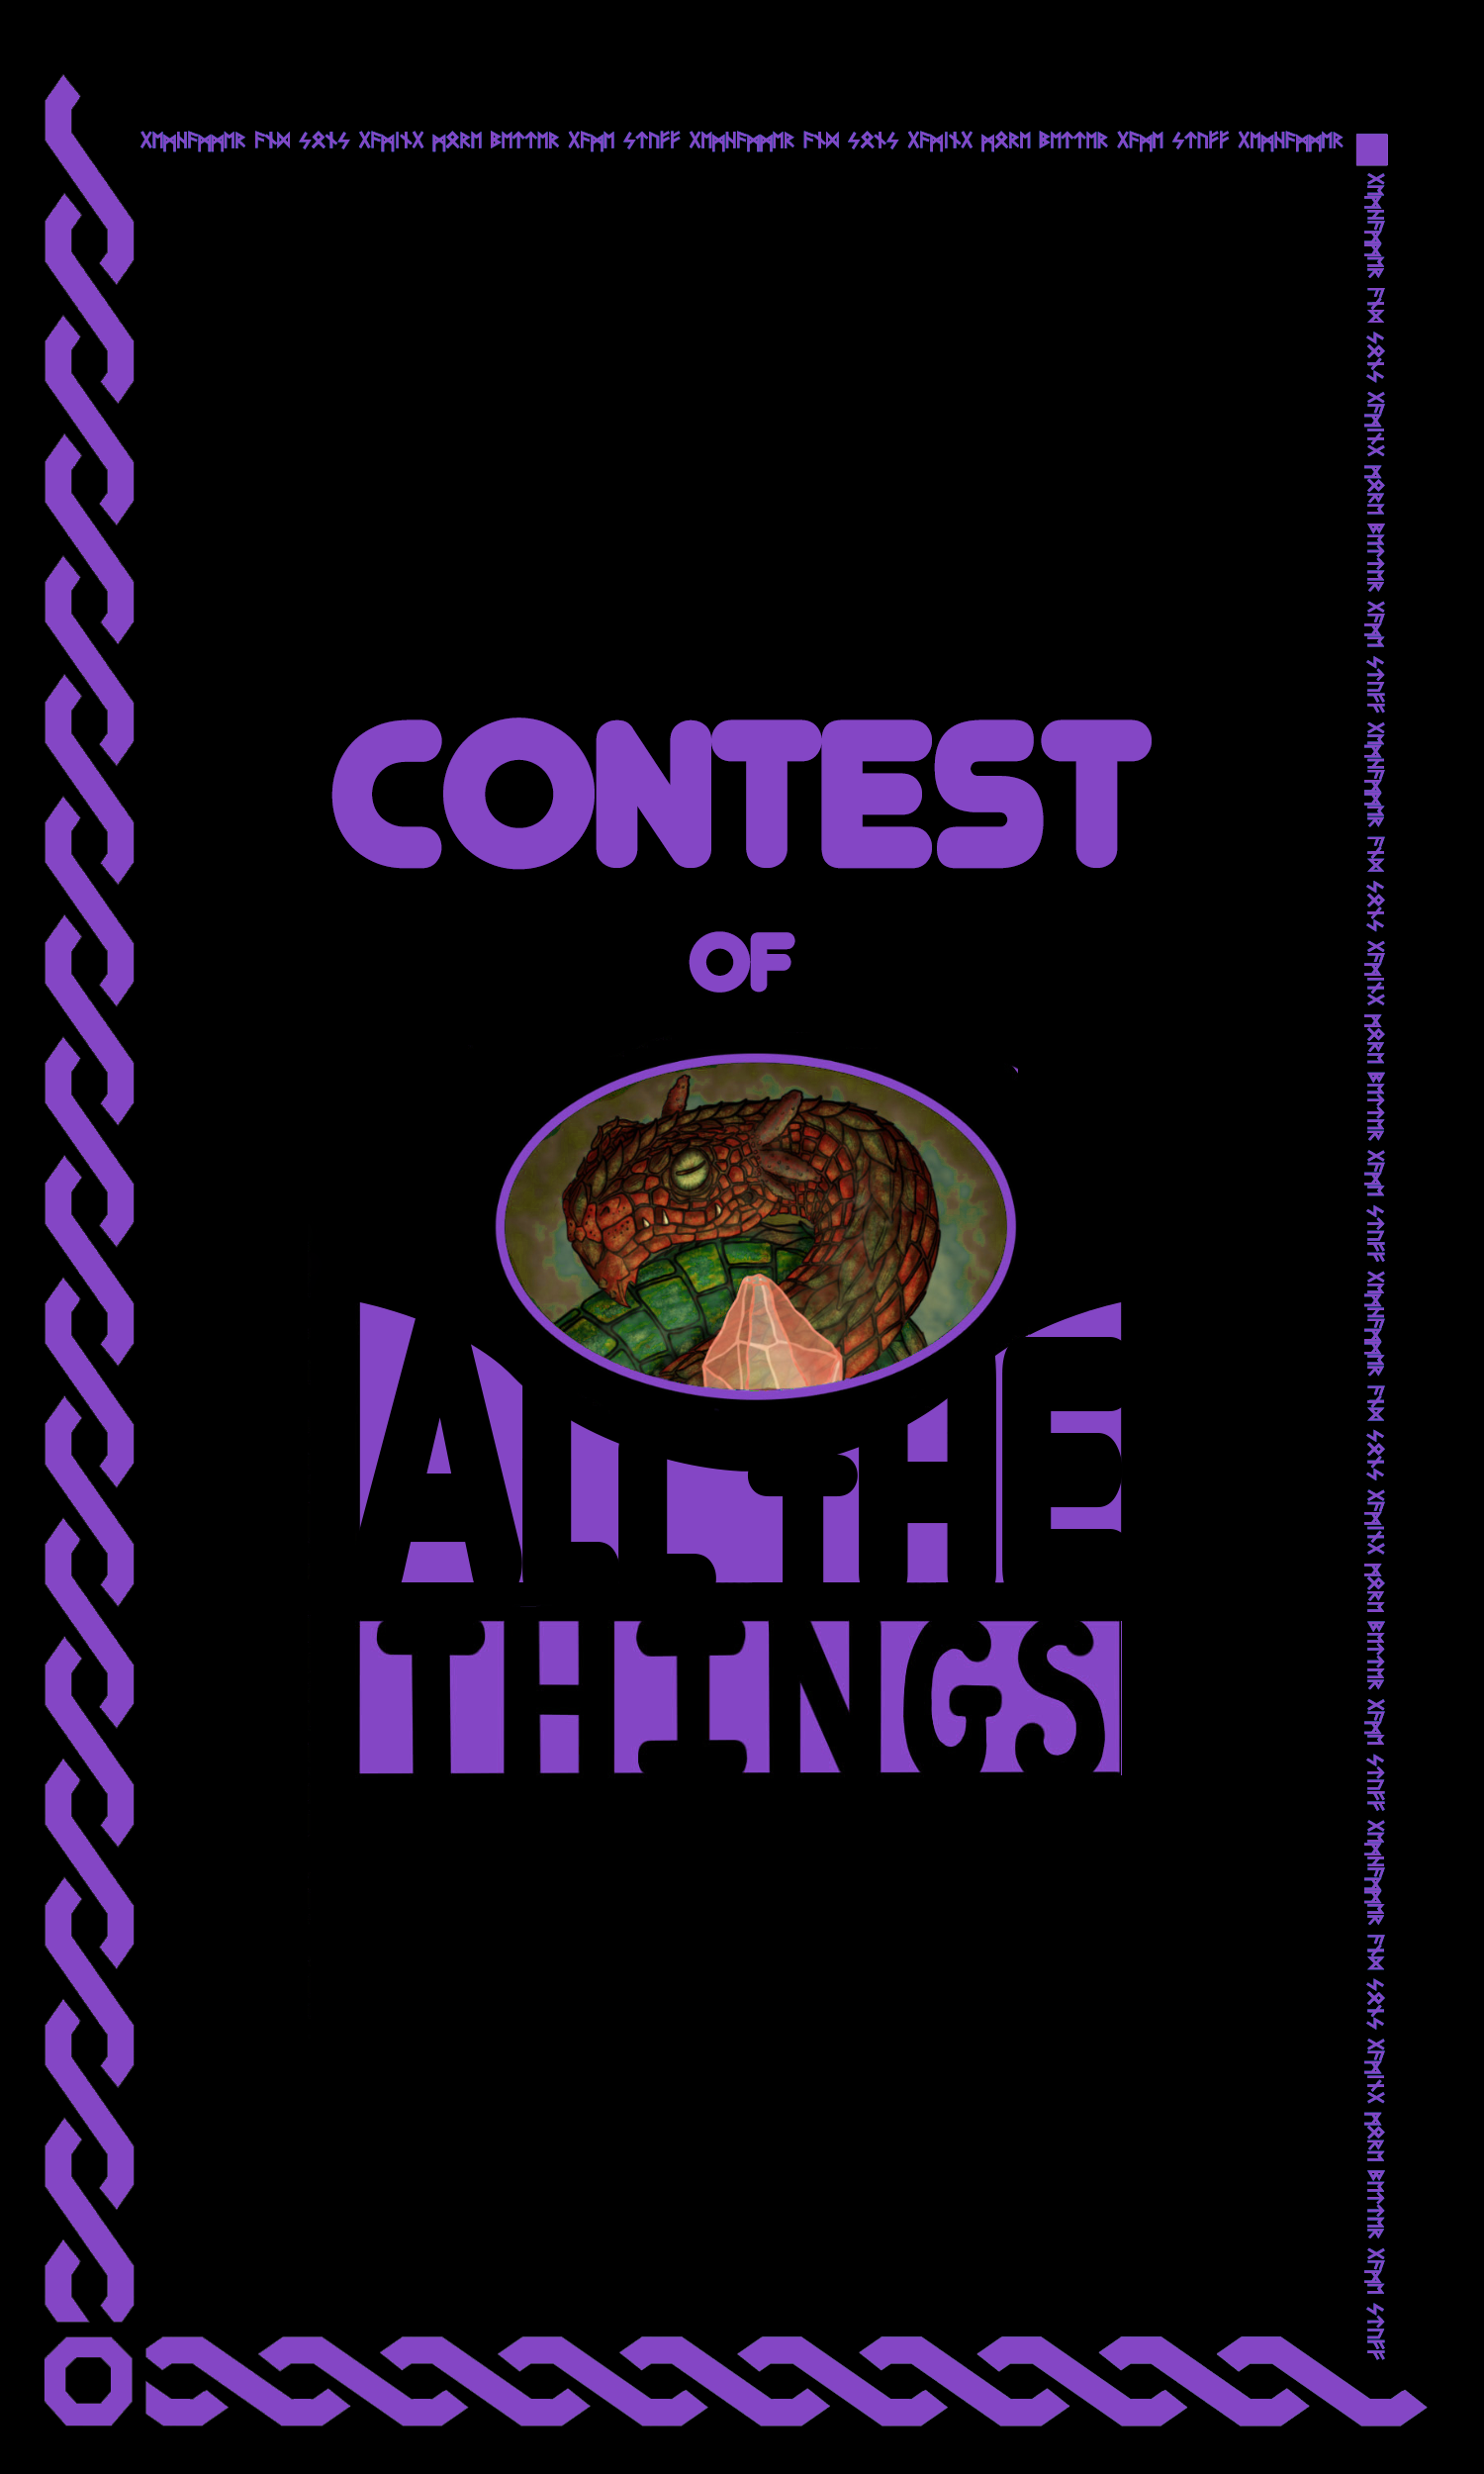 Your Effects on Our Cards! - As we outlined in last week's update, we're holding a contest in conjunction with our forthcoming Deck of All the Things.Back when we kickstarted the original Deck of Many Things, we offered a chance for people to have their very own card made and put into the deck. While that first kickstarter never went through, we wanted to bring back the concept for this new iteration of the deck.From today February 10th, 2018 until April 1st, 2018, community members will be able to submit their spell effect for entry into the contest.5 lucky winners will have their effect made into a card in the deck, receive a free copy of the Deck of All the Things, AND receive a Gemhammer Dice T-shirt. Winners will be announced Live from the floor of PAX East on April 6th 2018. To enter, click the link below and fill out the entry form. One entry per person.No Purchase Necessary.Purchasing or preordering will not increase your chance of winning.